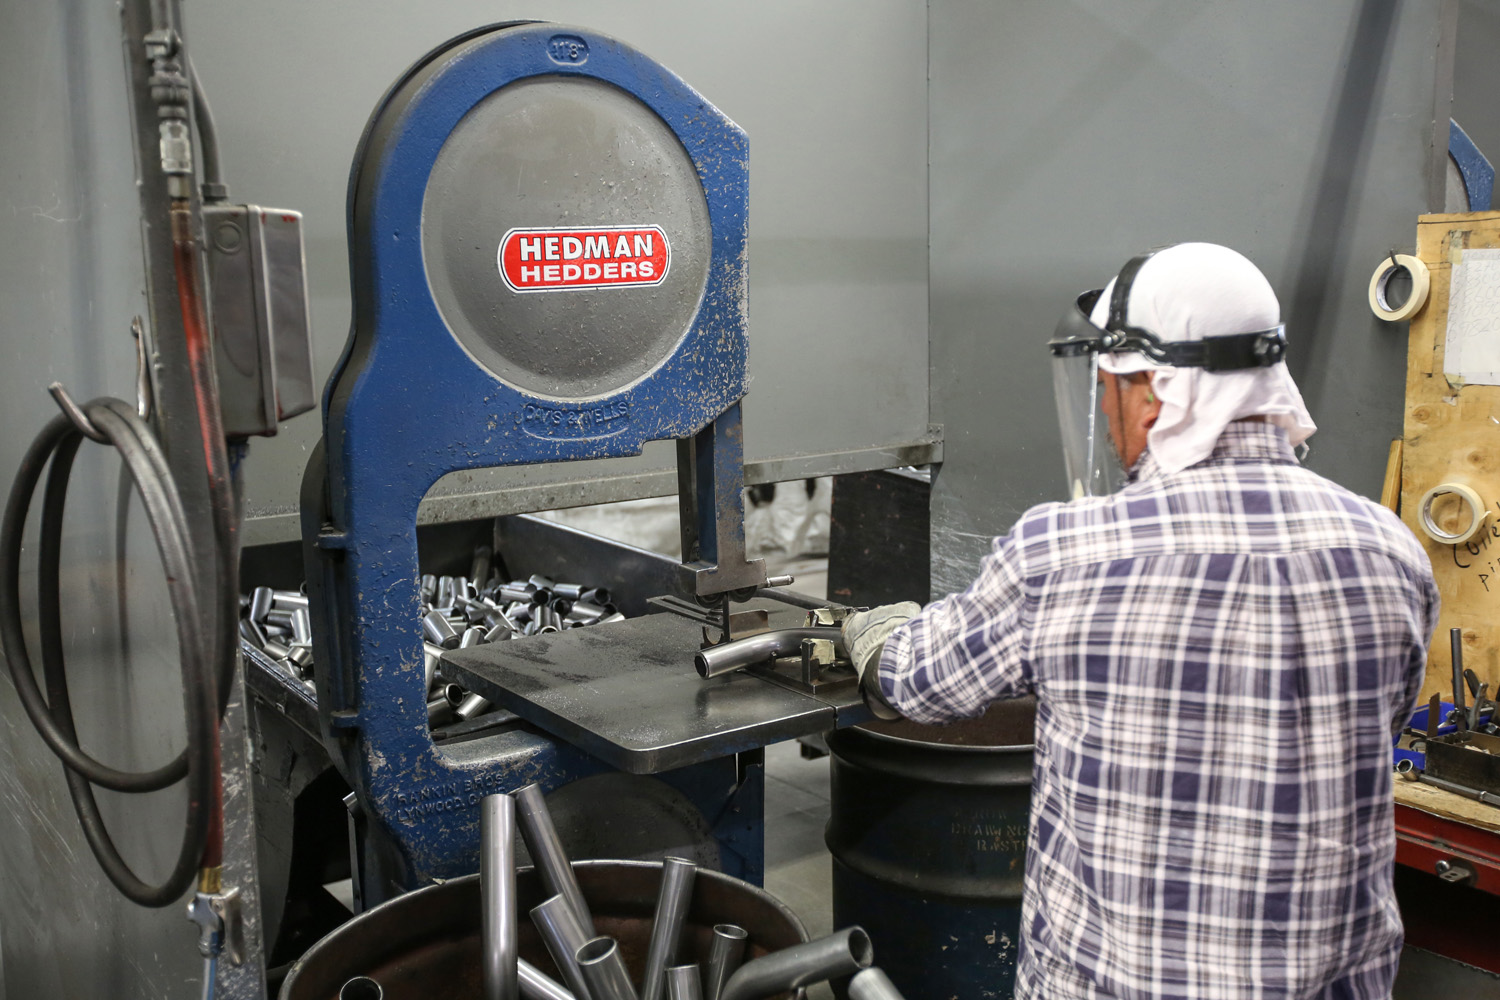 Hedman headers band saw